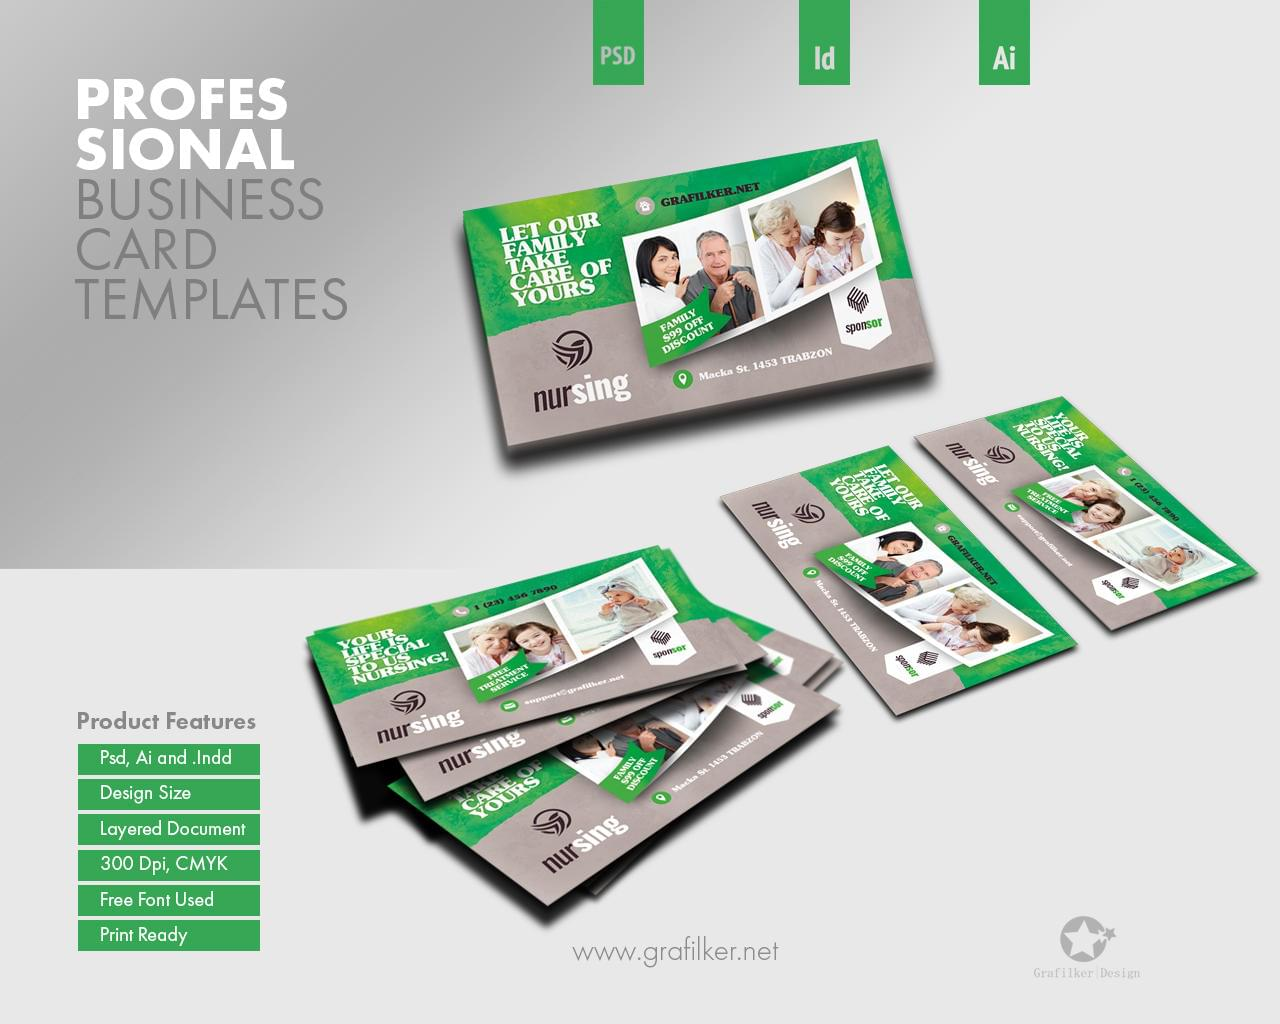 Professional Business Card Templates by grafilker - 112092